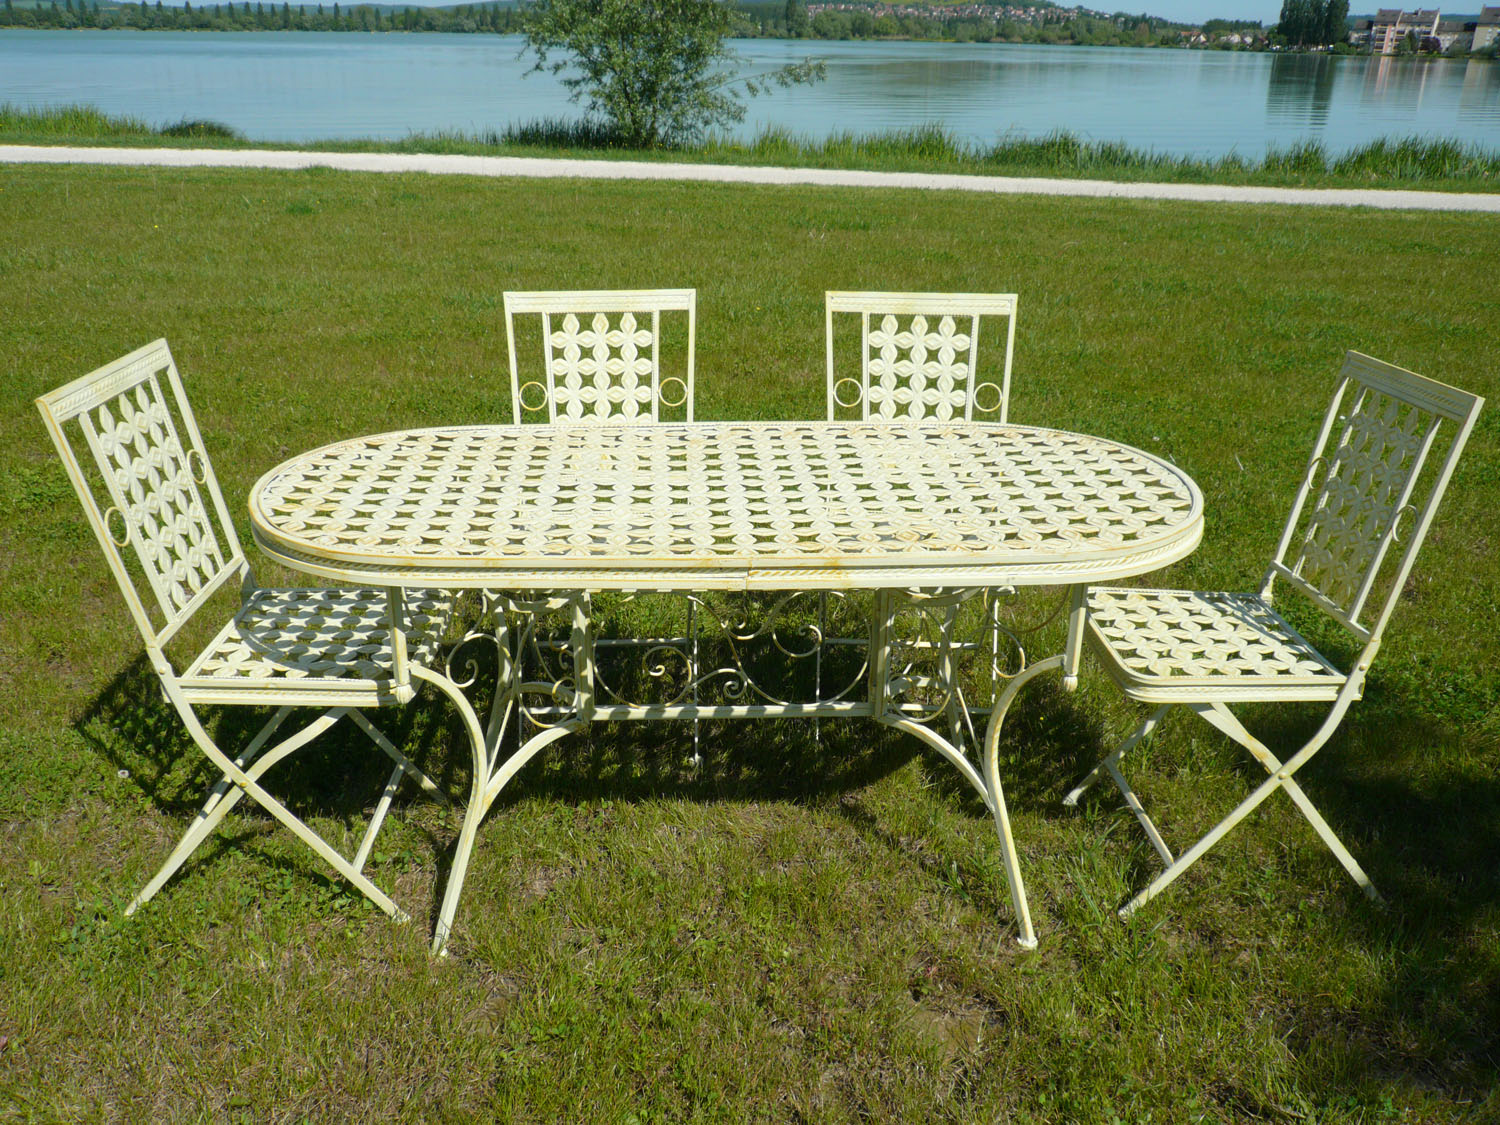 Salon de jardin en fer forg tables chaises bancs - Salon de jardin en fer colore ...